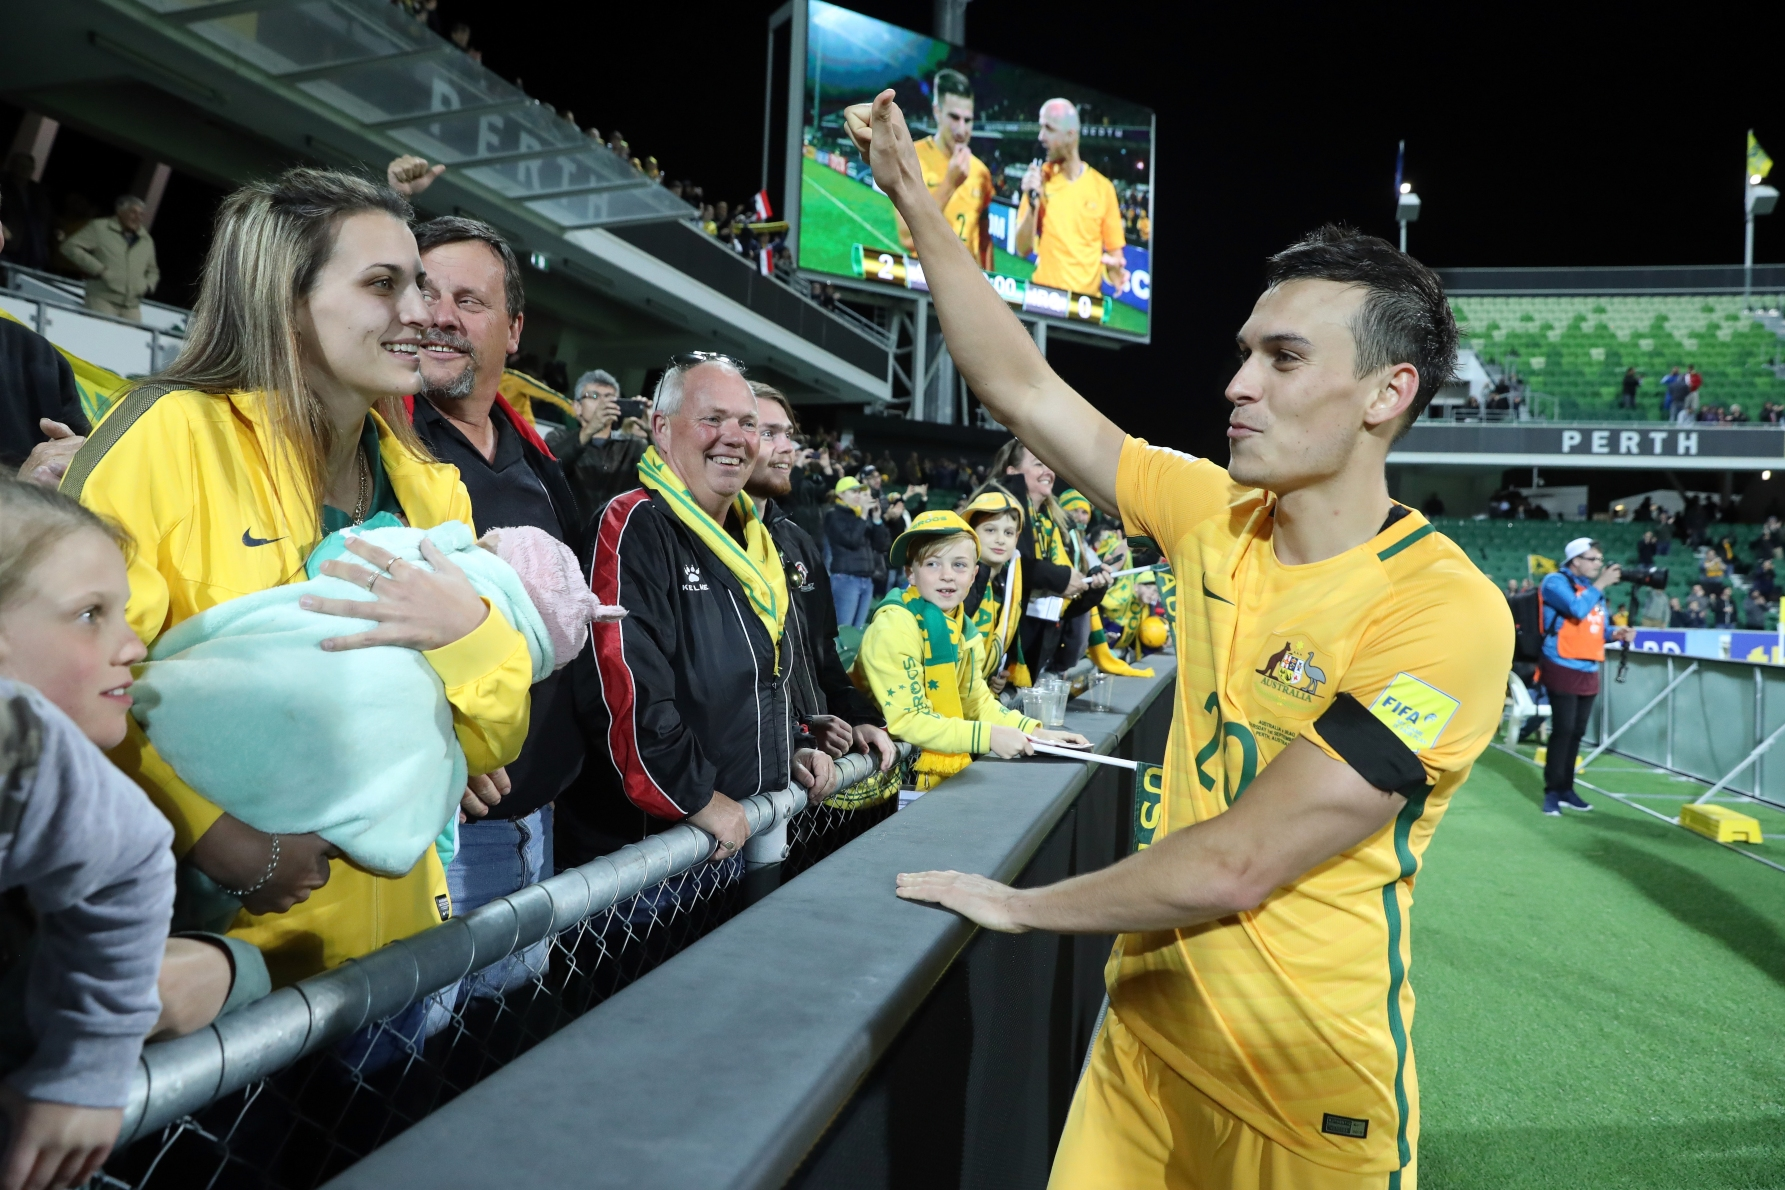 The Socceroos' last three games in Perth – history hints at fruitful night against Kuwait